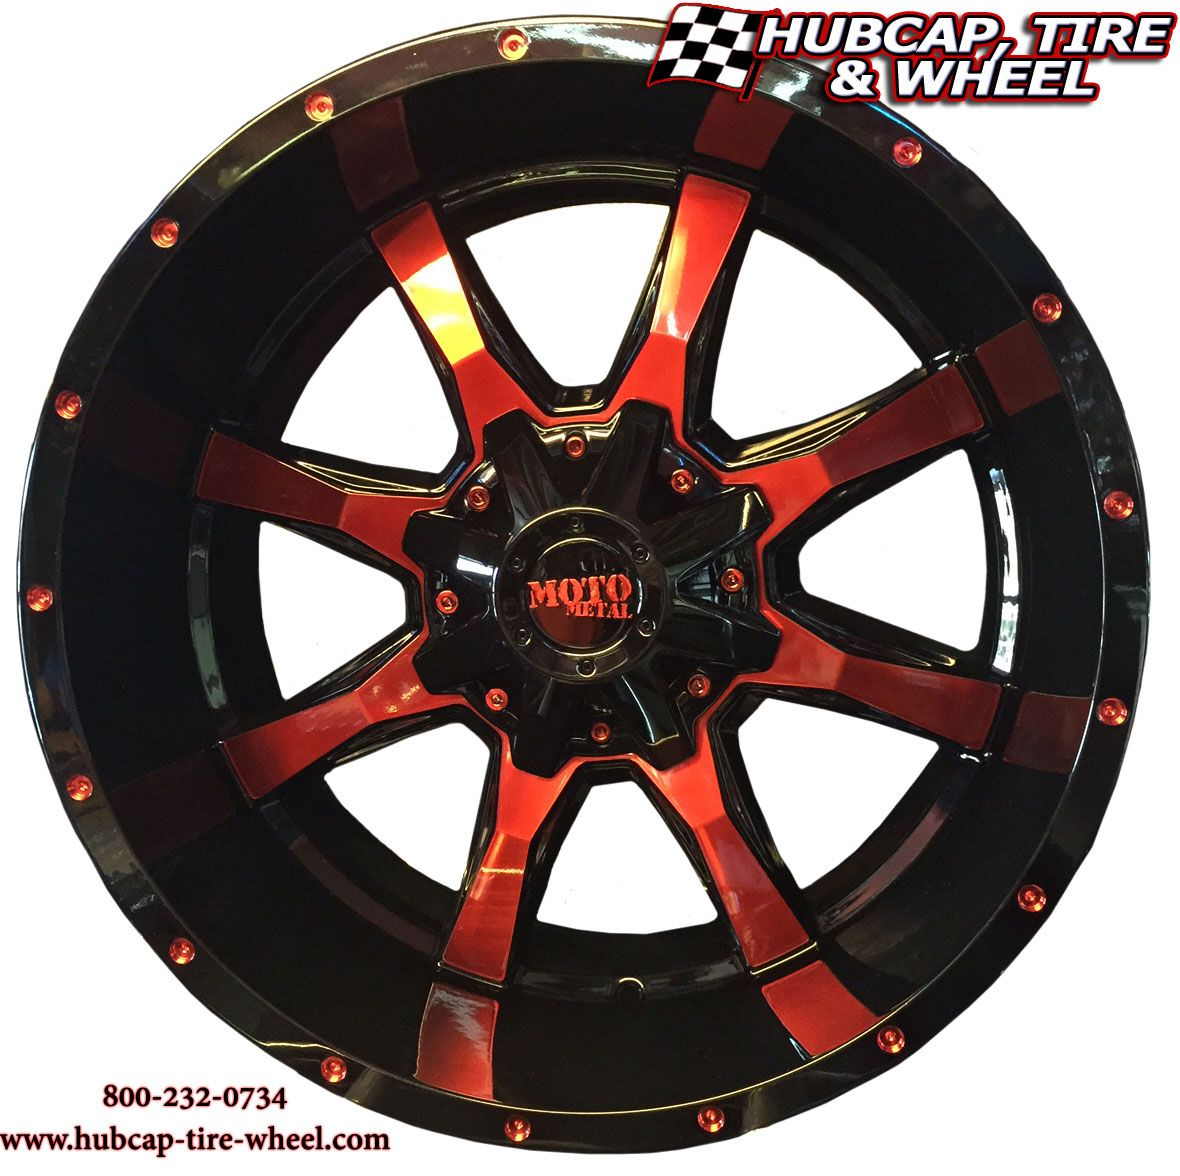 Moto Metal Wheels MO970 Black And Machined With Custom Red Clear Coat Color TruckTrucks